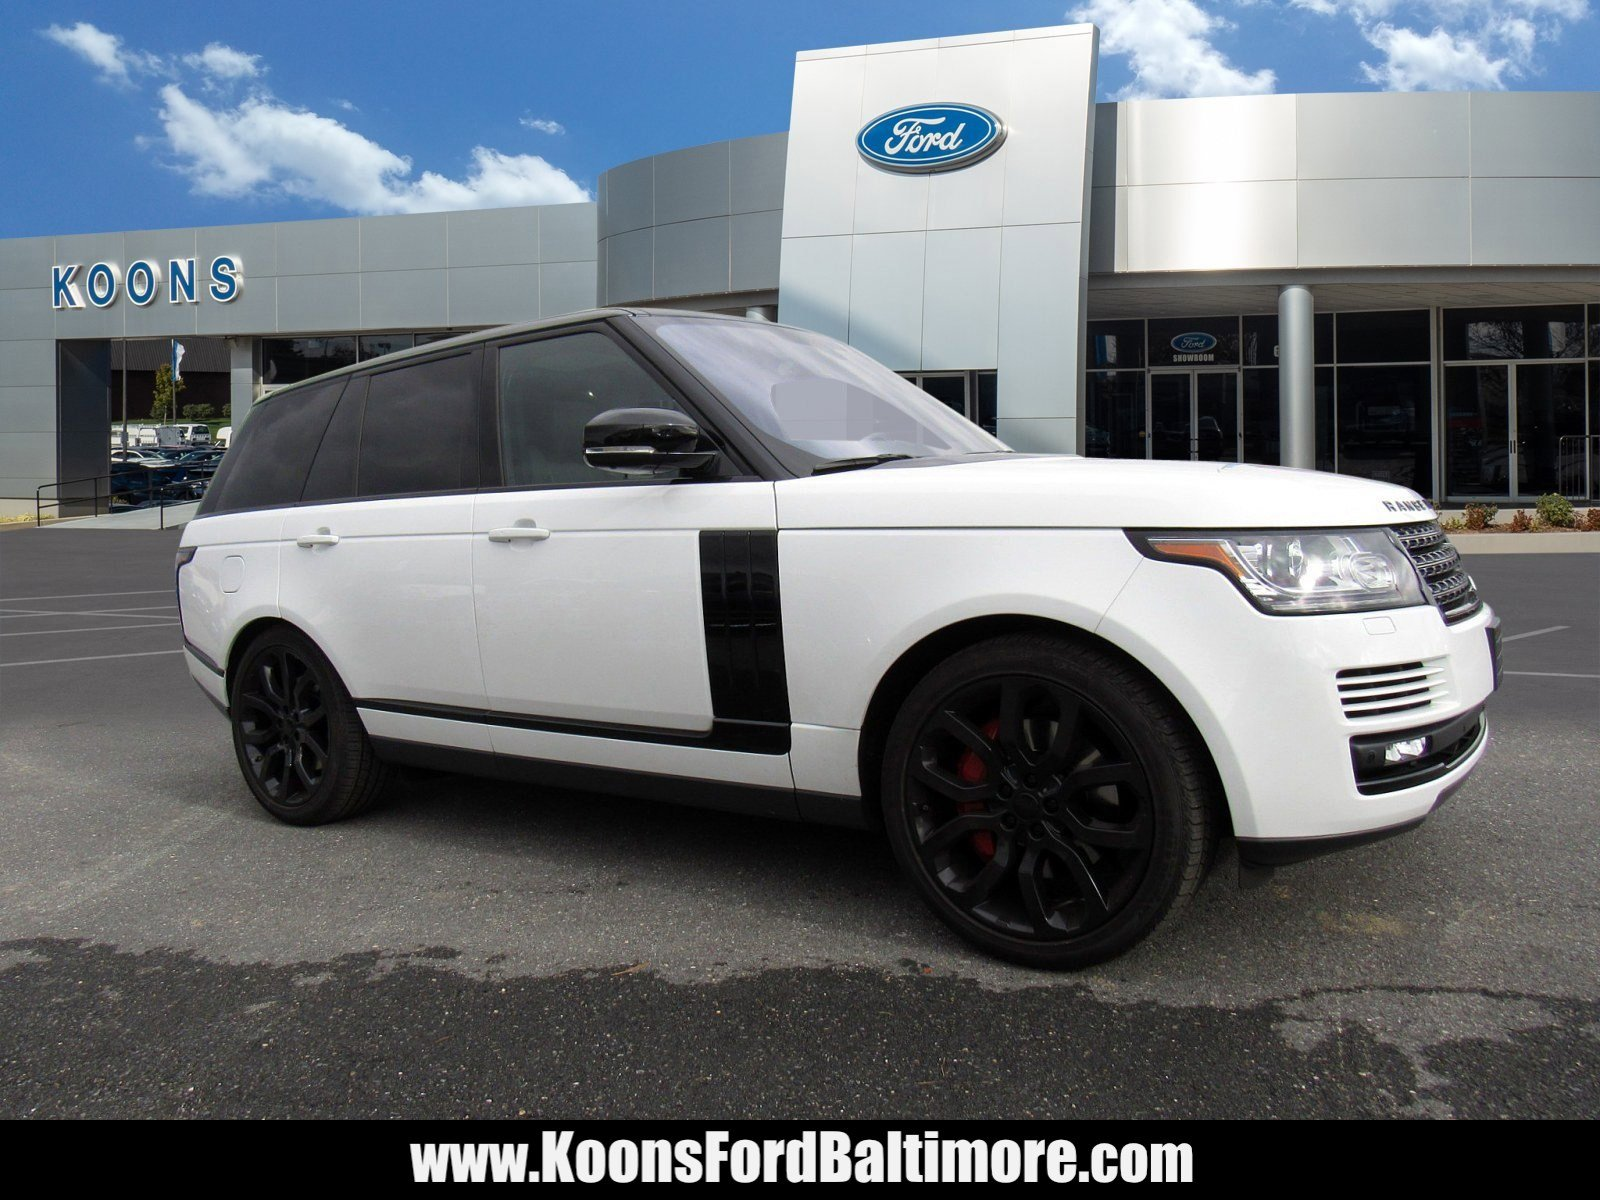 2016 Land Rover Range Rover HSE image